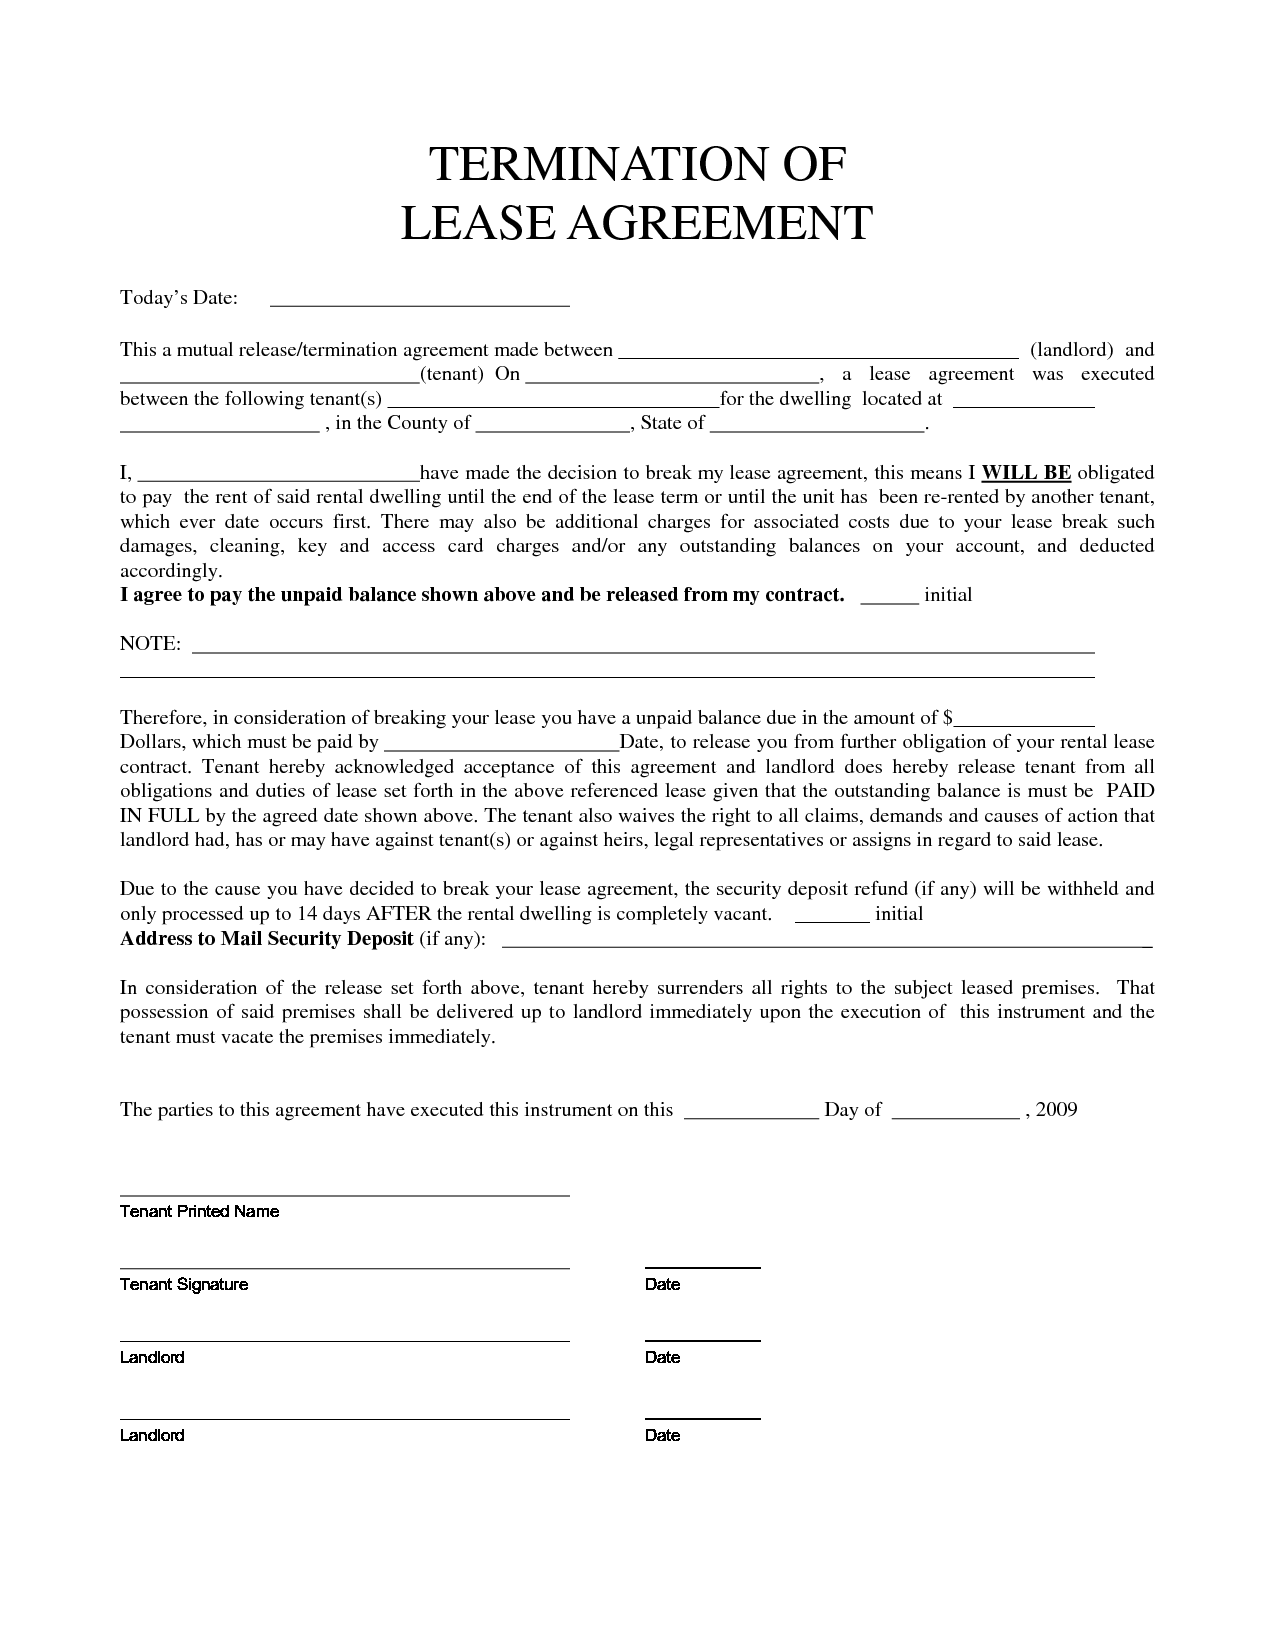 Personal Property Rental Agreement Forms – Mutual Agreement Contract Template